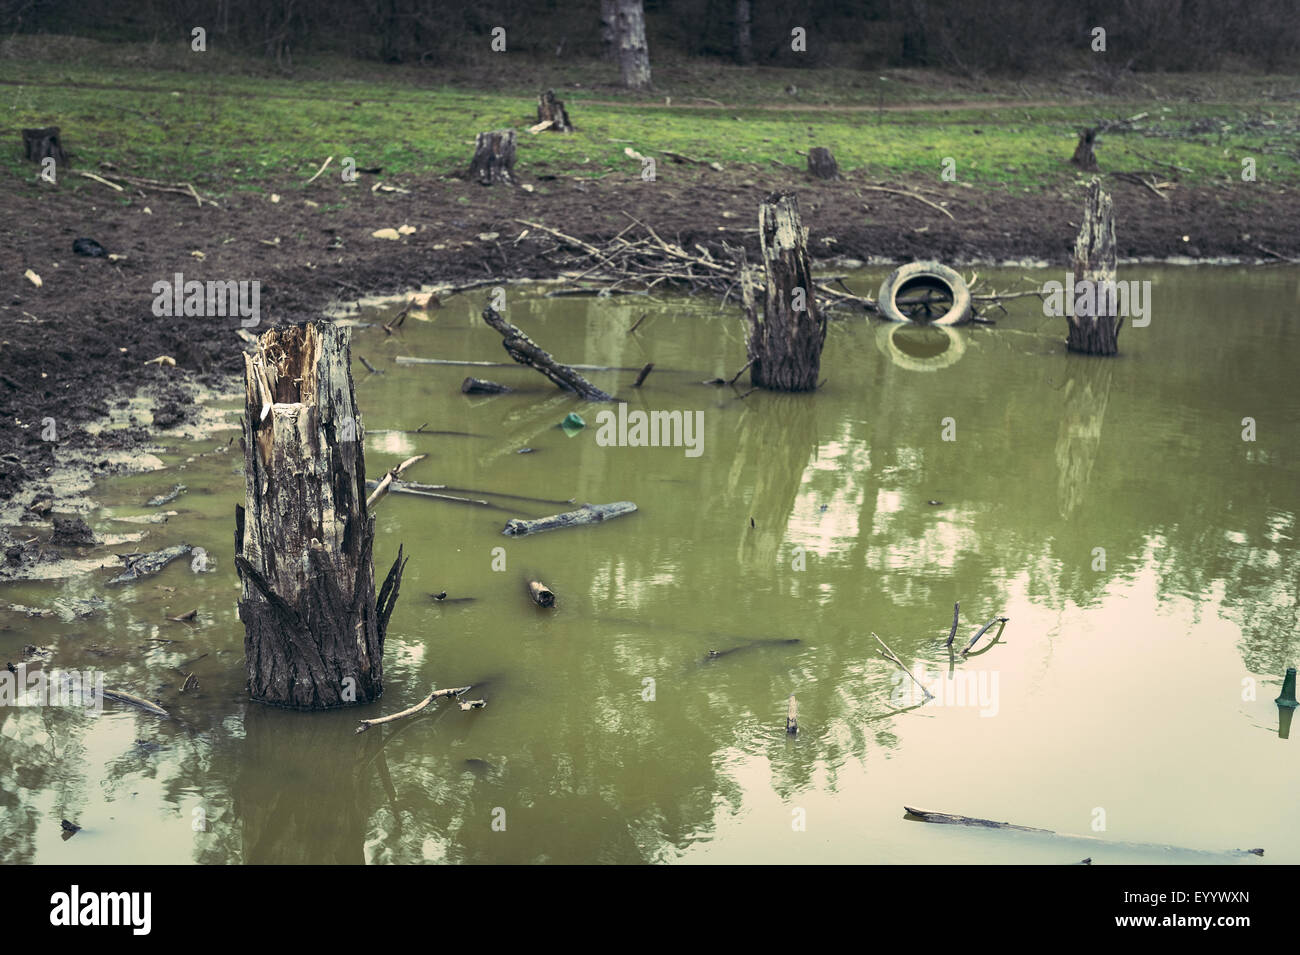 Tree stumps in a murky old lake. - Stock Image